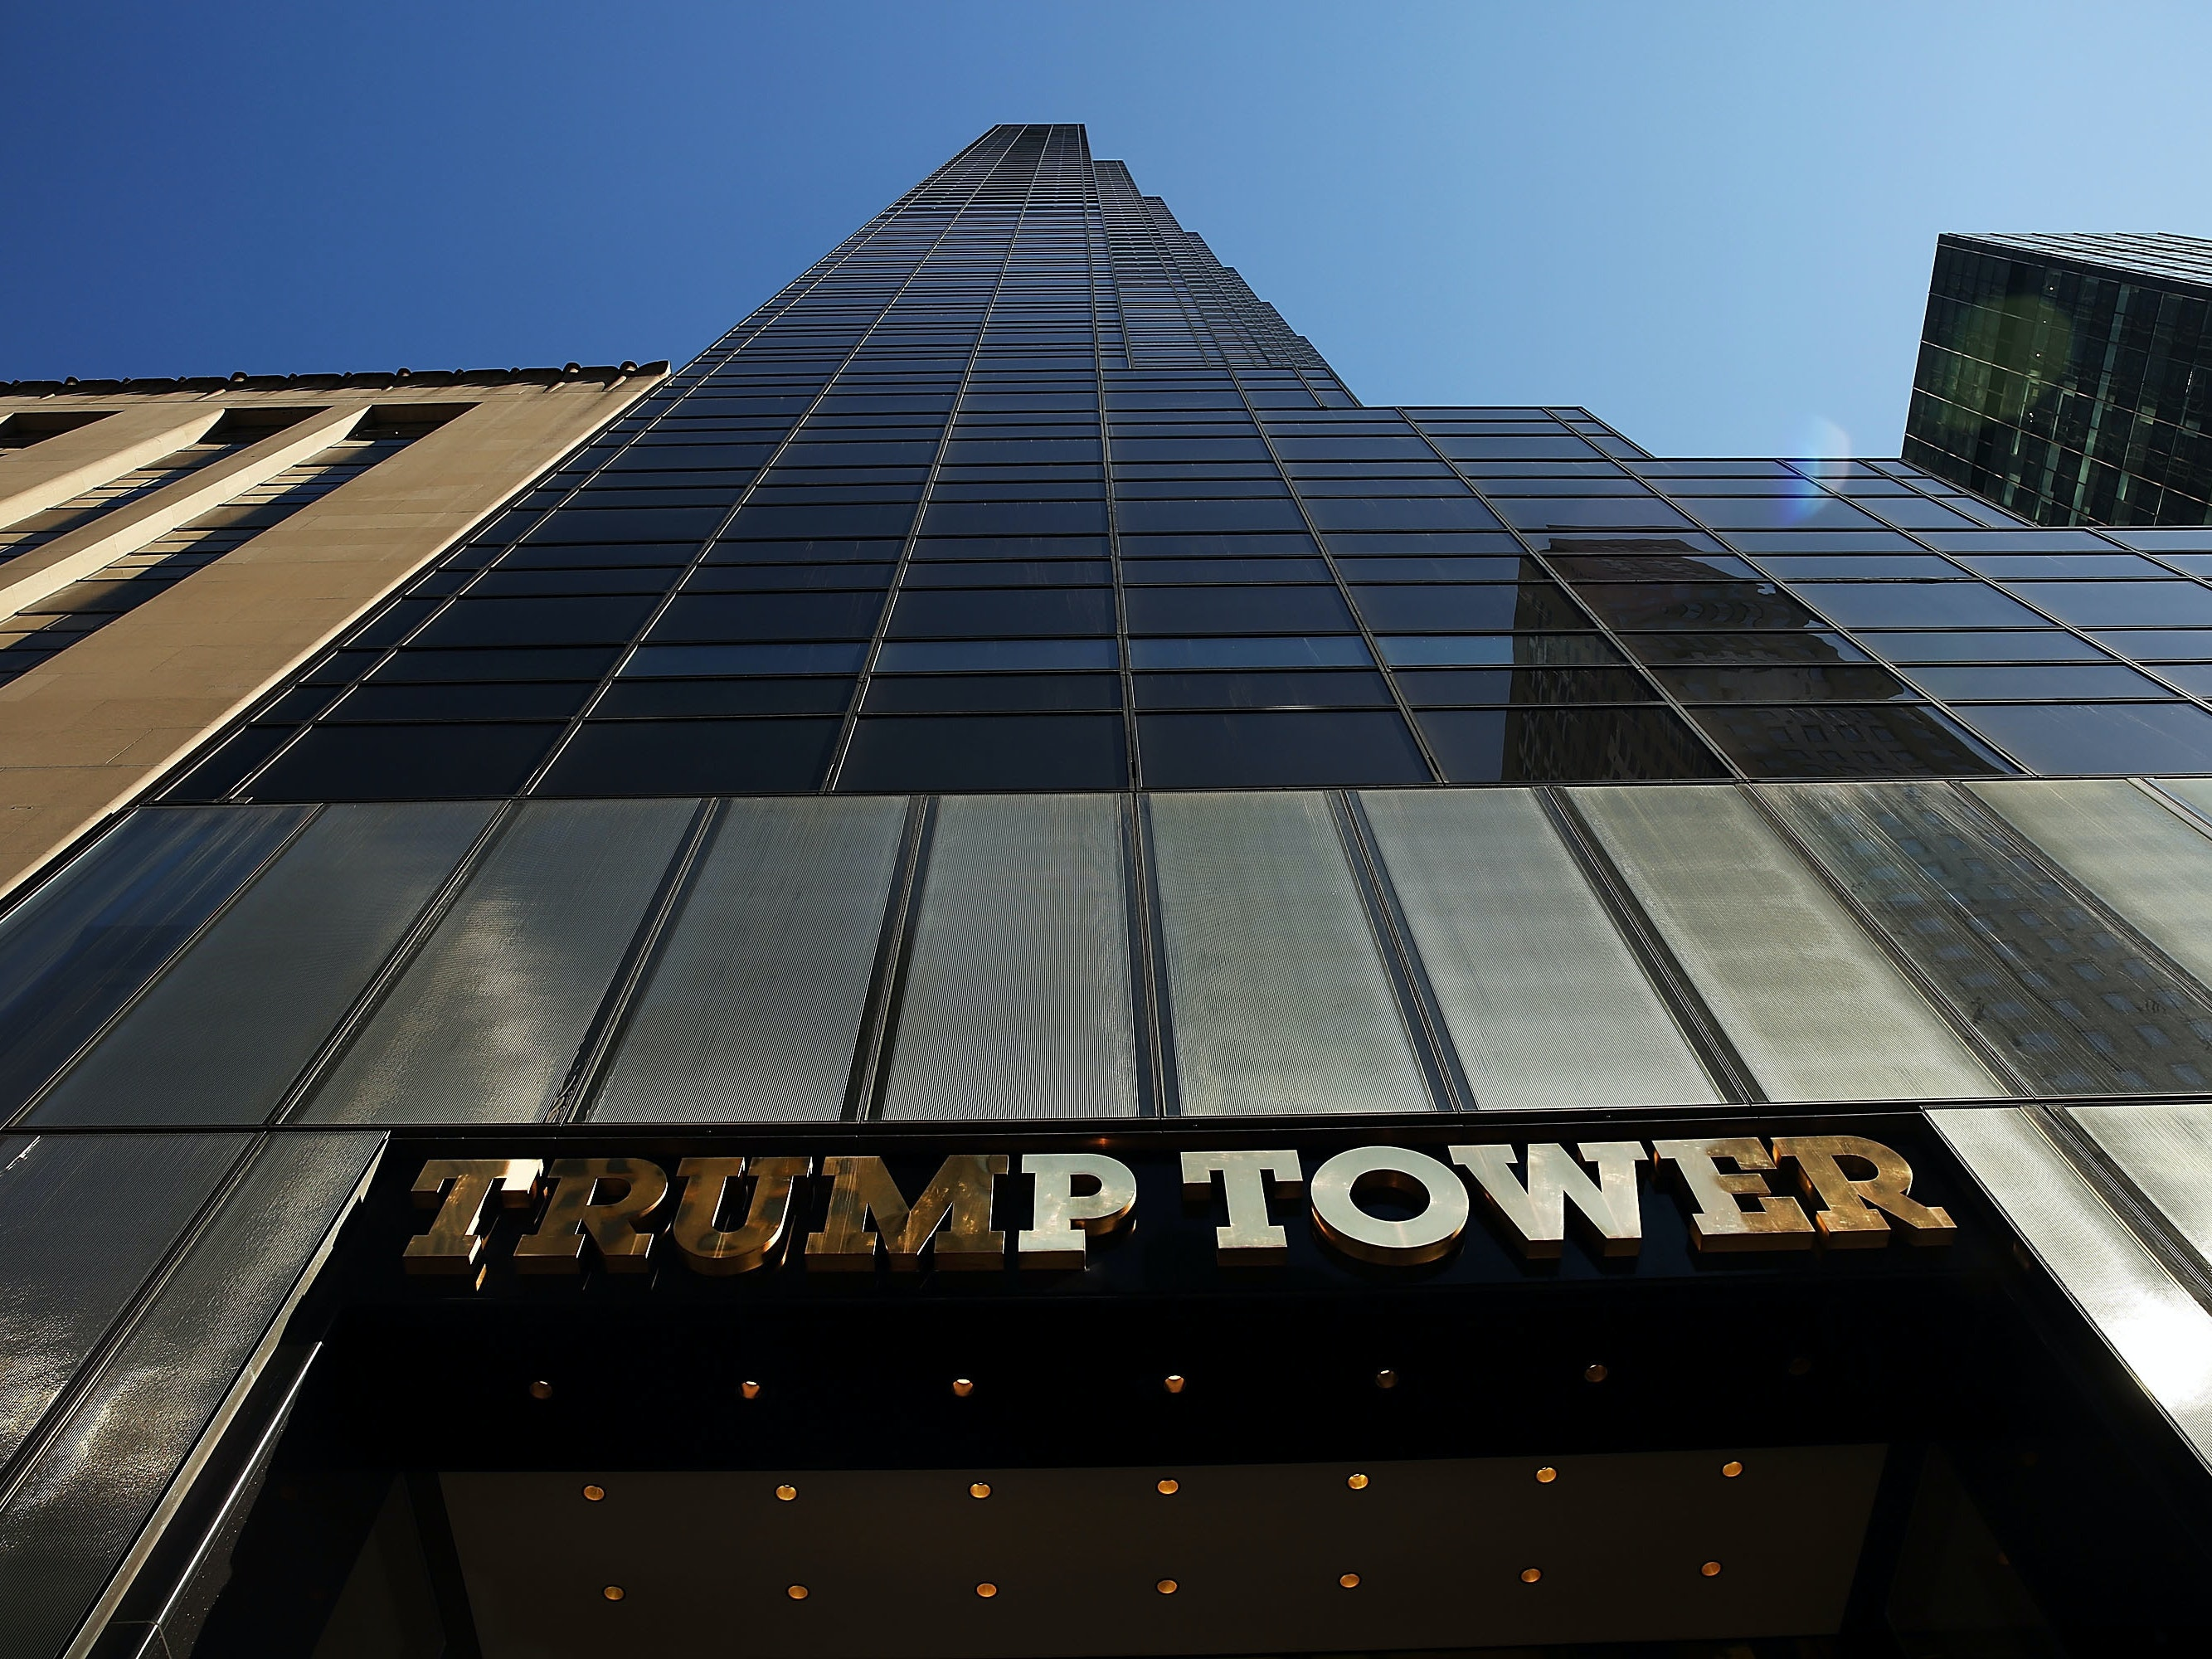 NEW YORK, NY - MARCH 12:  Trump Tower stands along 5th Avenue in Manhattan as police stand guard outside  following an earlier protest against Republican presidential candidate Donald Trump in front of the building on March 12, 2016 in New York City. A member of the New York Police Department (NYPD) stated that the police will now keep an around the clock presence at the location due to the number of protests and threats against Donald Trump.  (Photo by Spencer Platt/Getty Images)